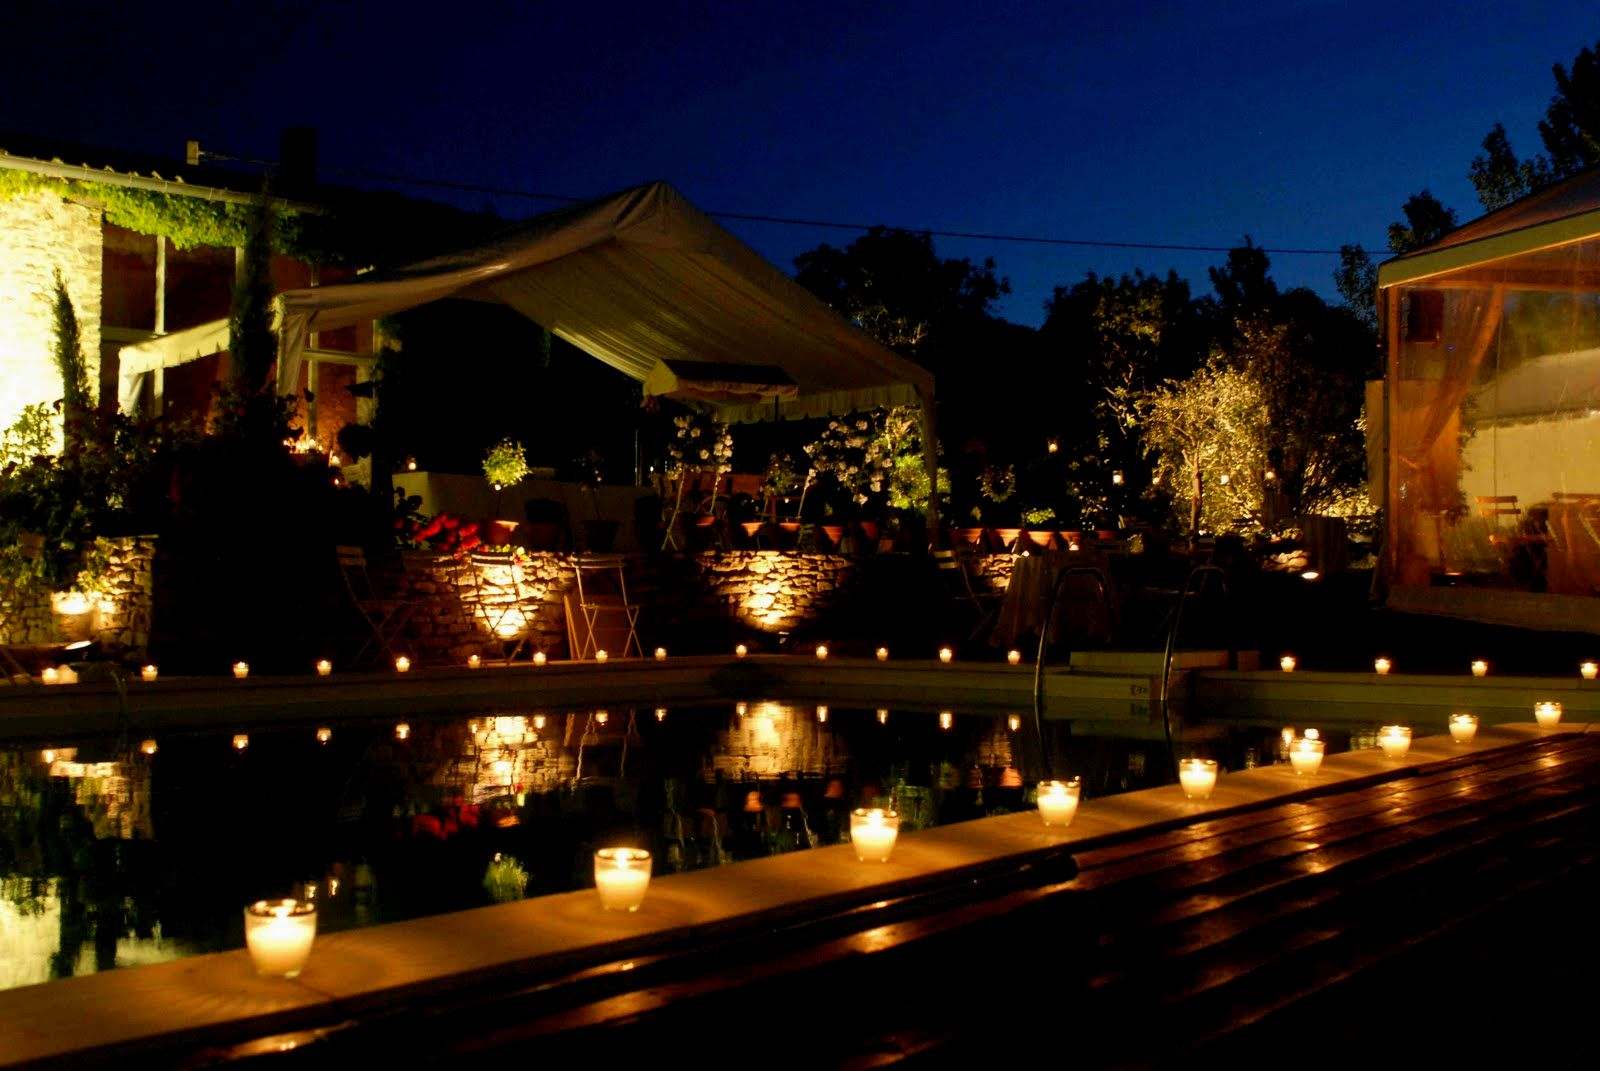 Backyard Candle Lit Flower Pool Decorations Party